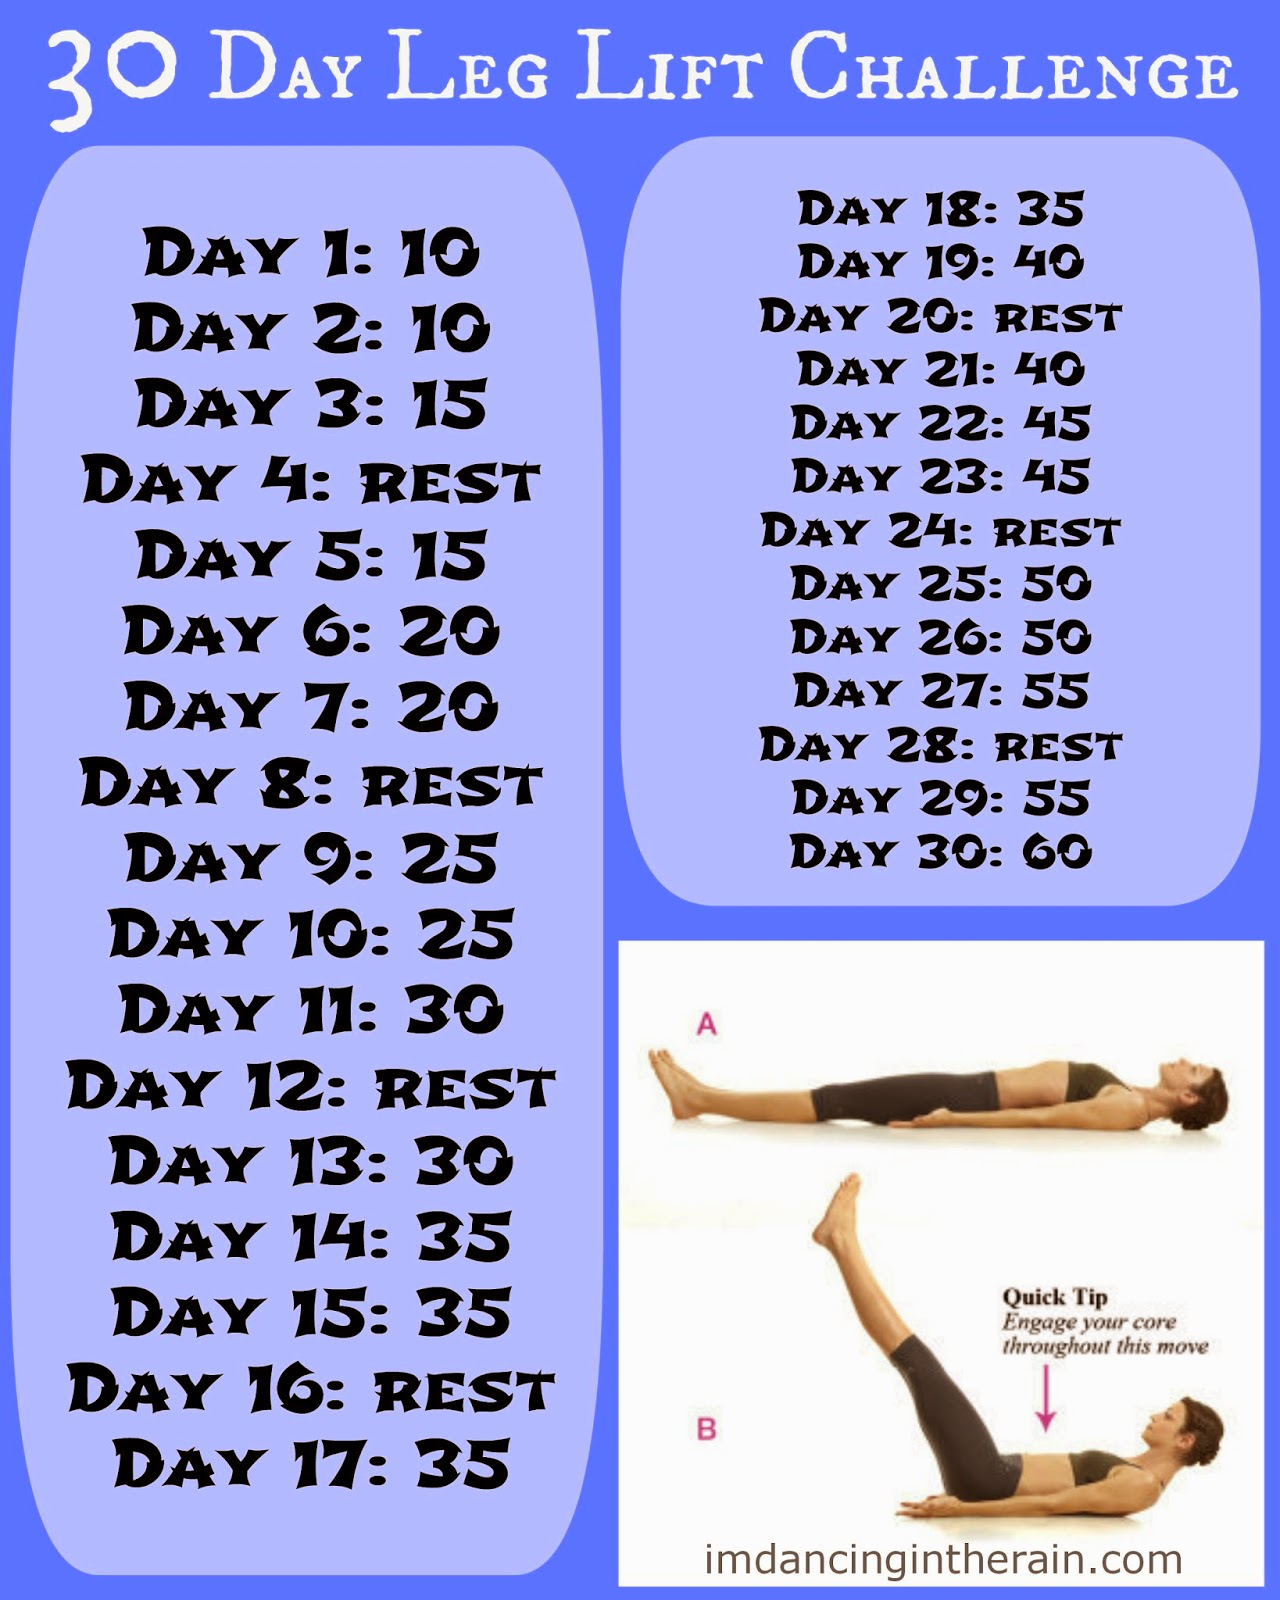 Dancing in the Rain: 30 Day Leg Lift Challenge